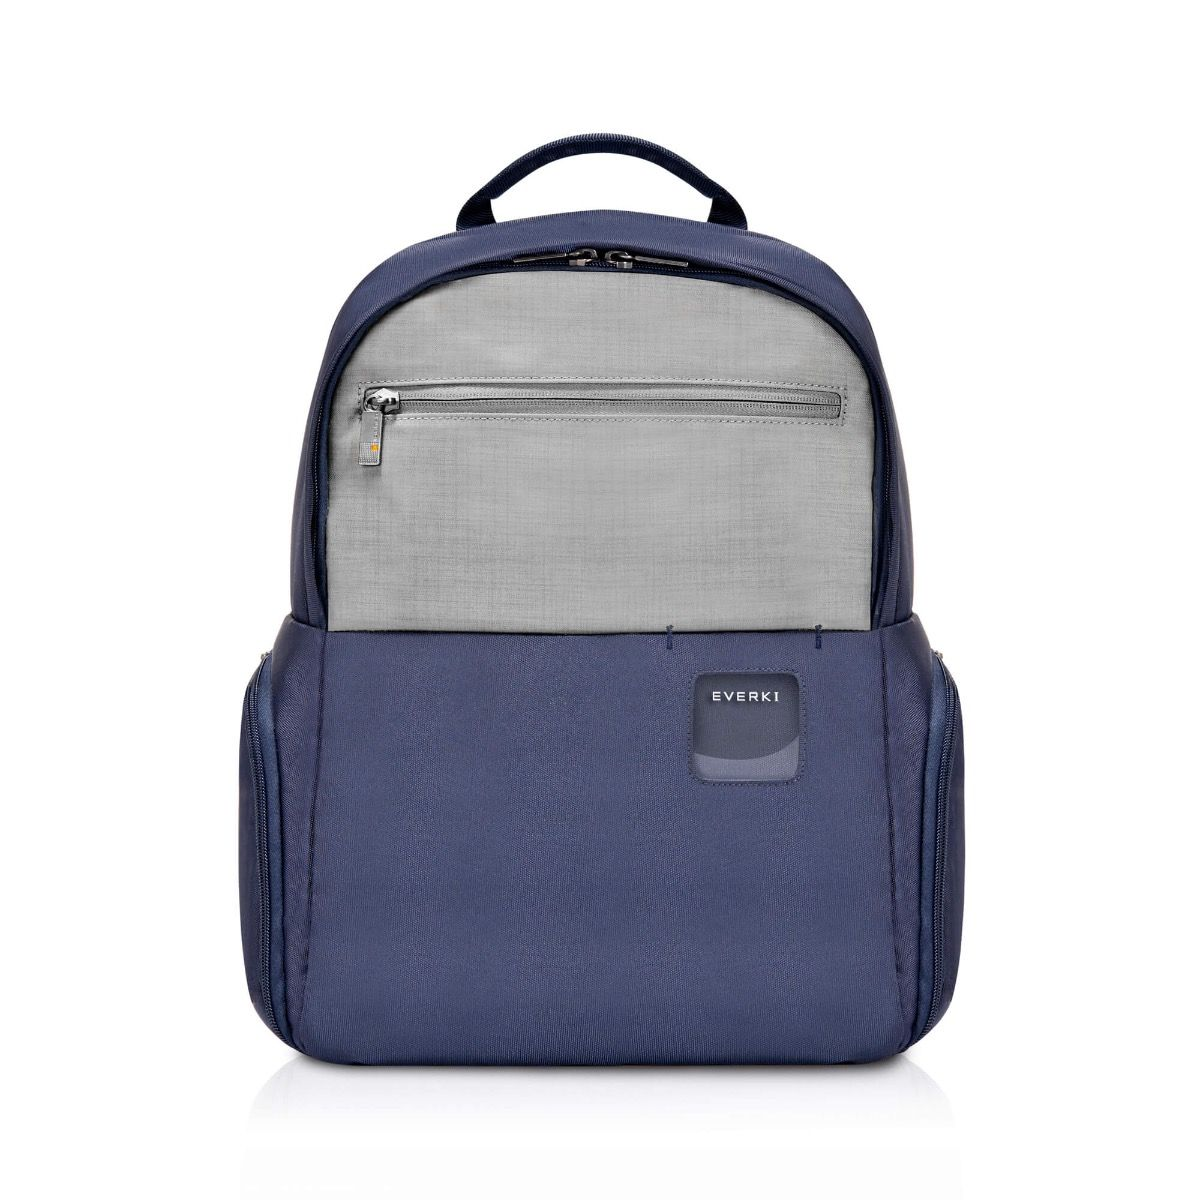 EVERKI ContemPRO 15 Inch Navy Laptop Backpack